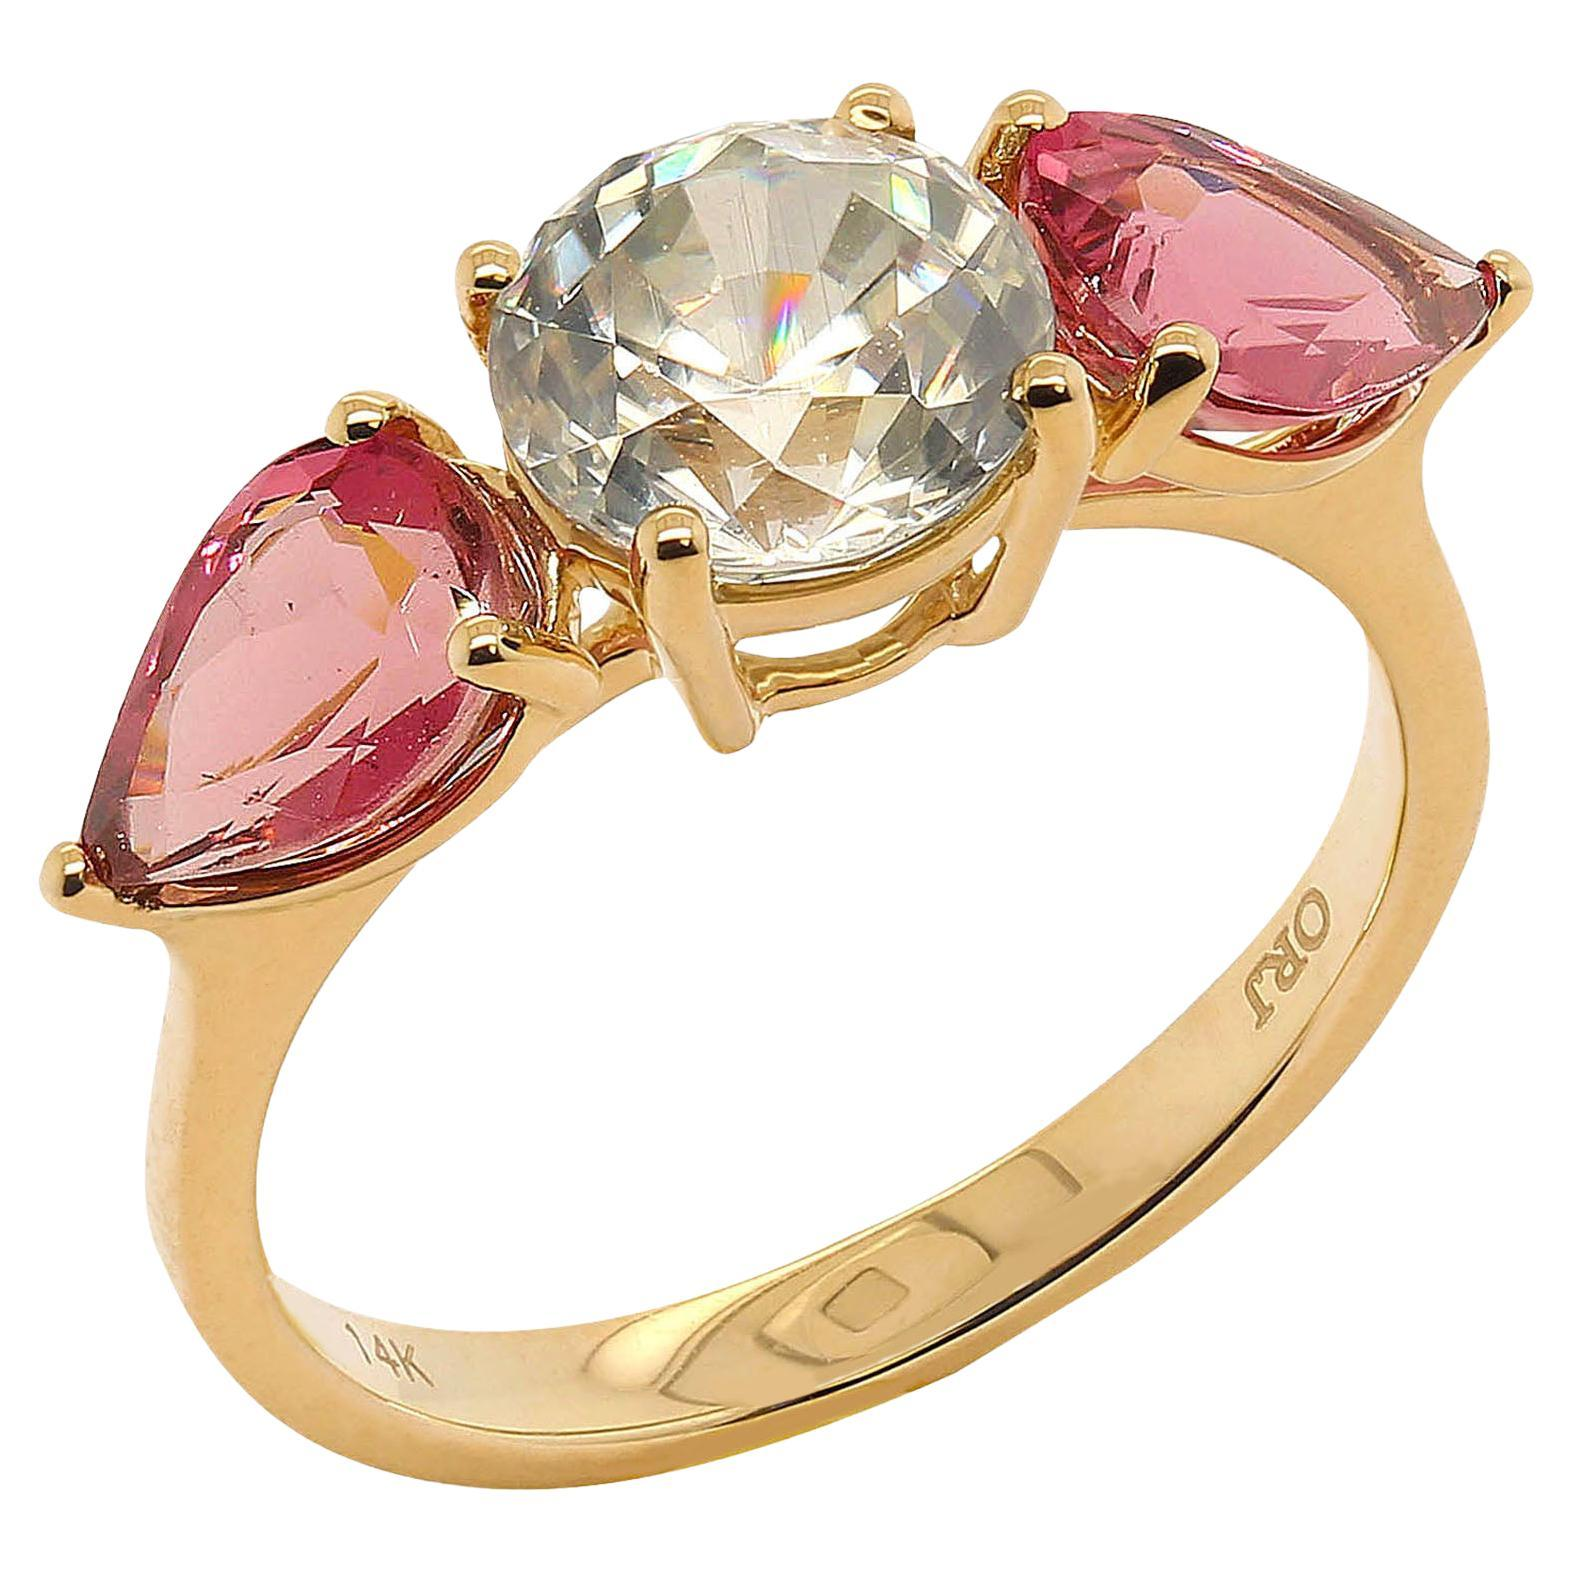 Sparkling White Cambodian Zircon and Pink Tourmaline Ring